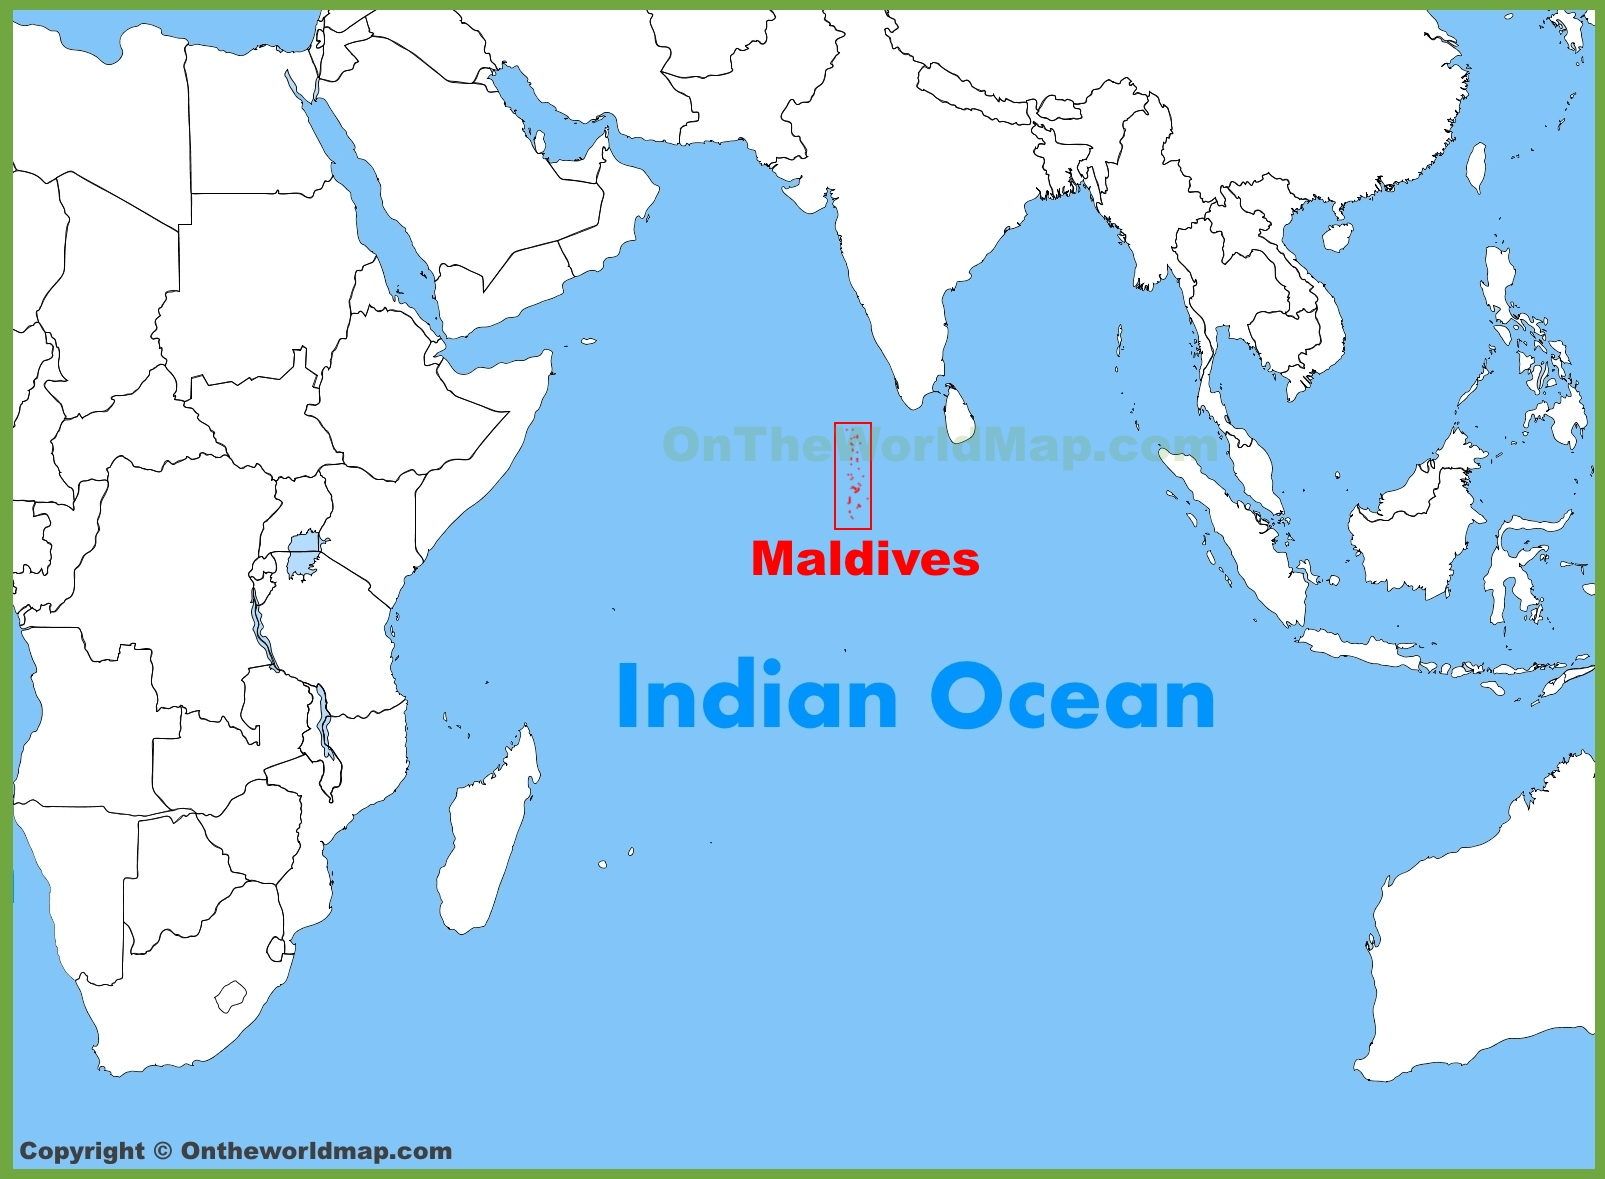 Maldives location on the Indian Ocean map